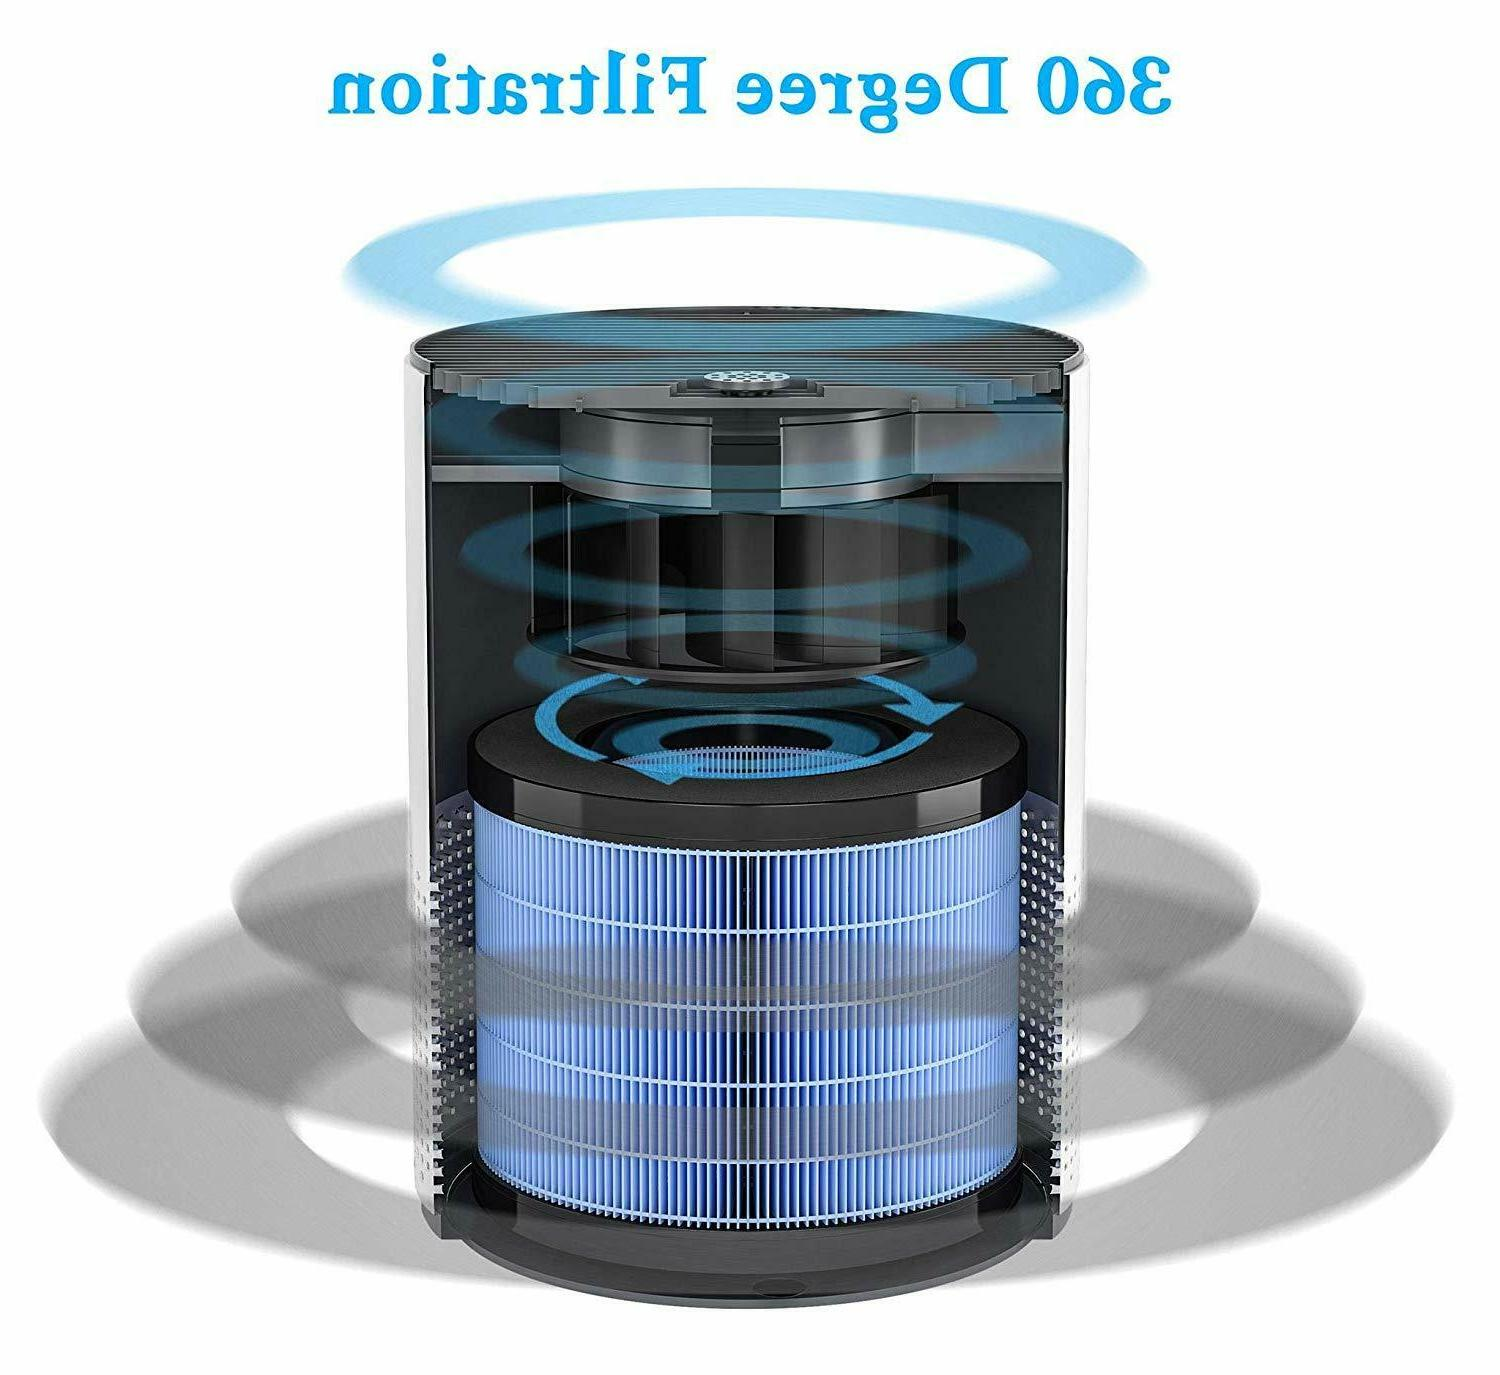 Miko Purifier for Home Aromatherapy, Timer, True HEPA Filter